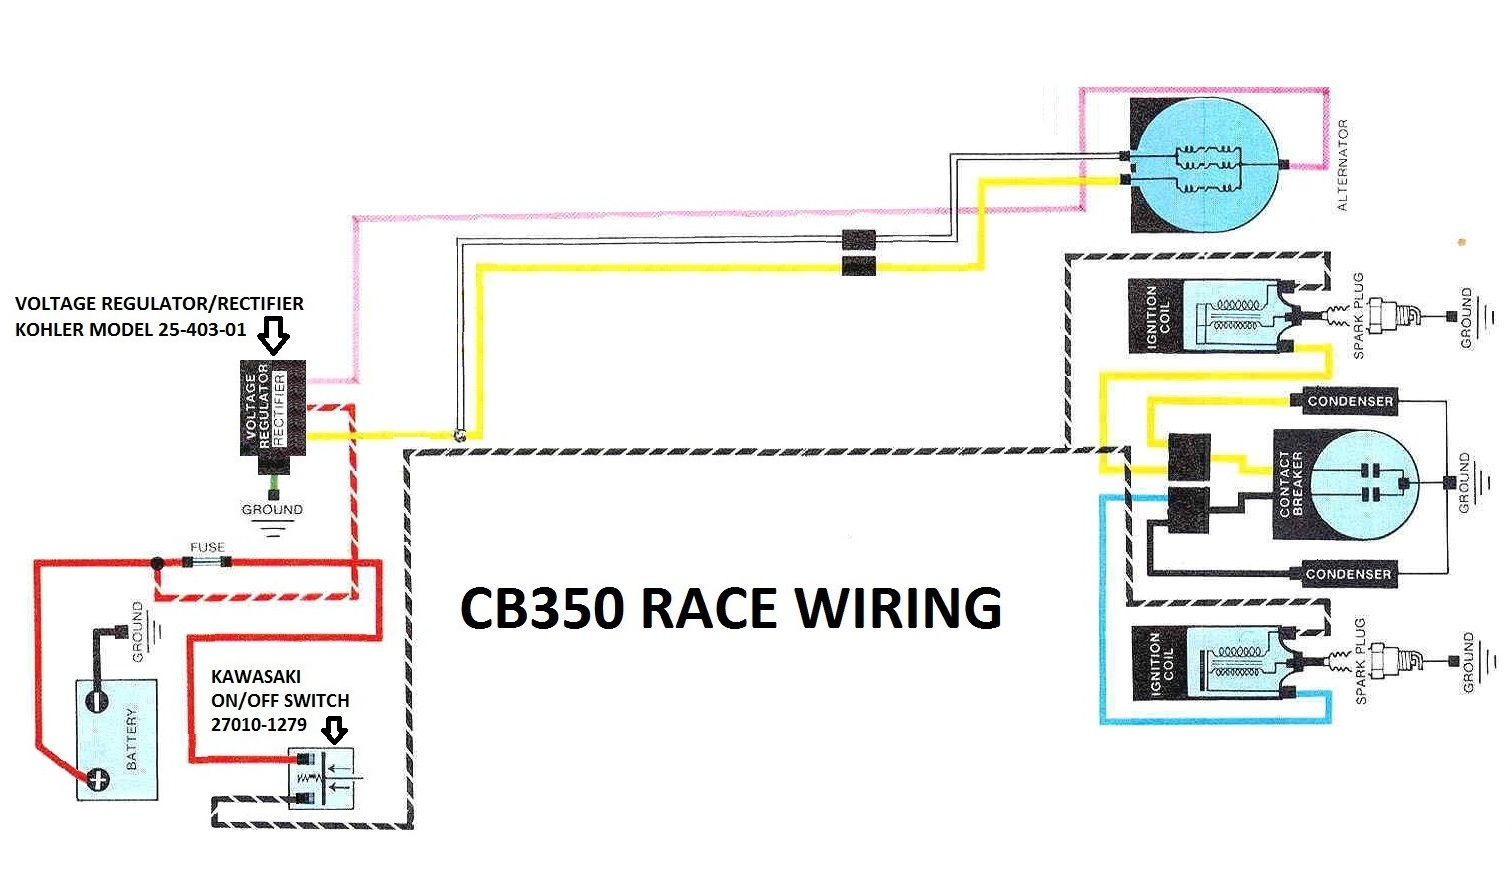 cb350 race wiring- a question about voltage regulator wiring cb350 wiring diagram 1972 honda cb350 wiring schematic